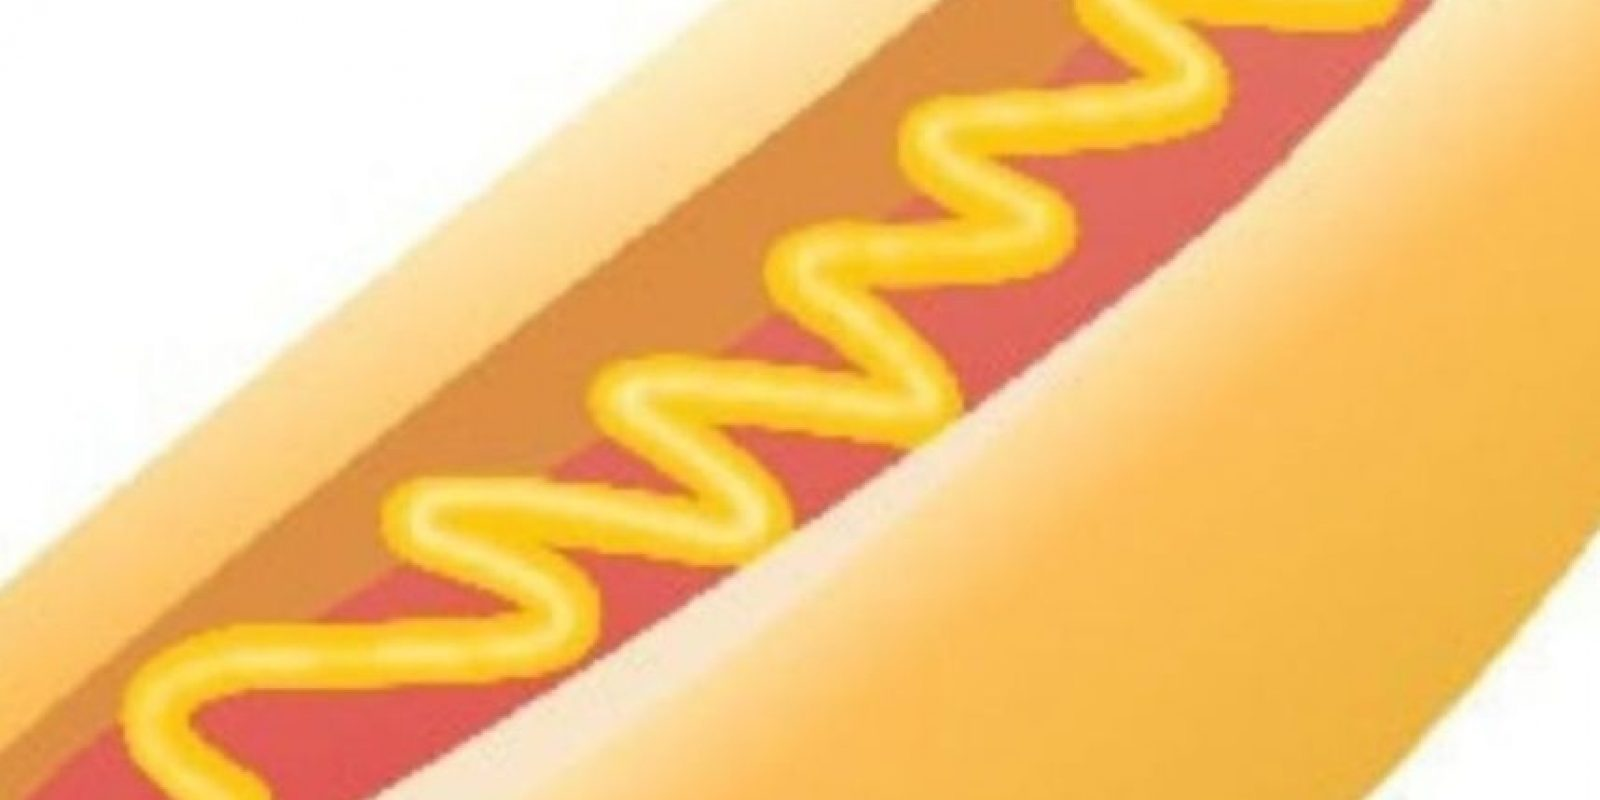 Hot dog. Foto: emojipedia.org